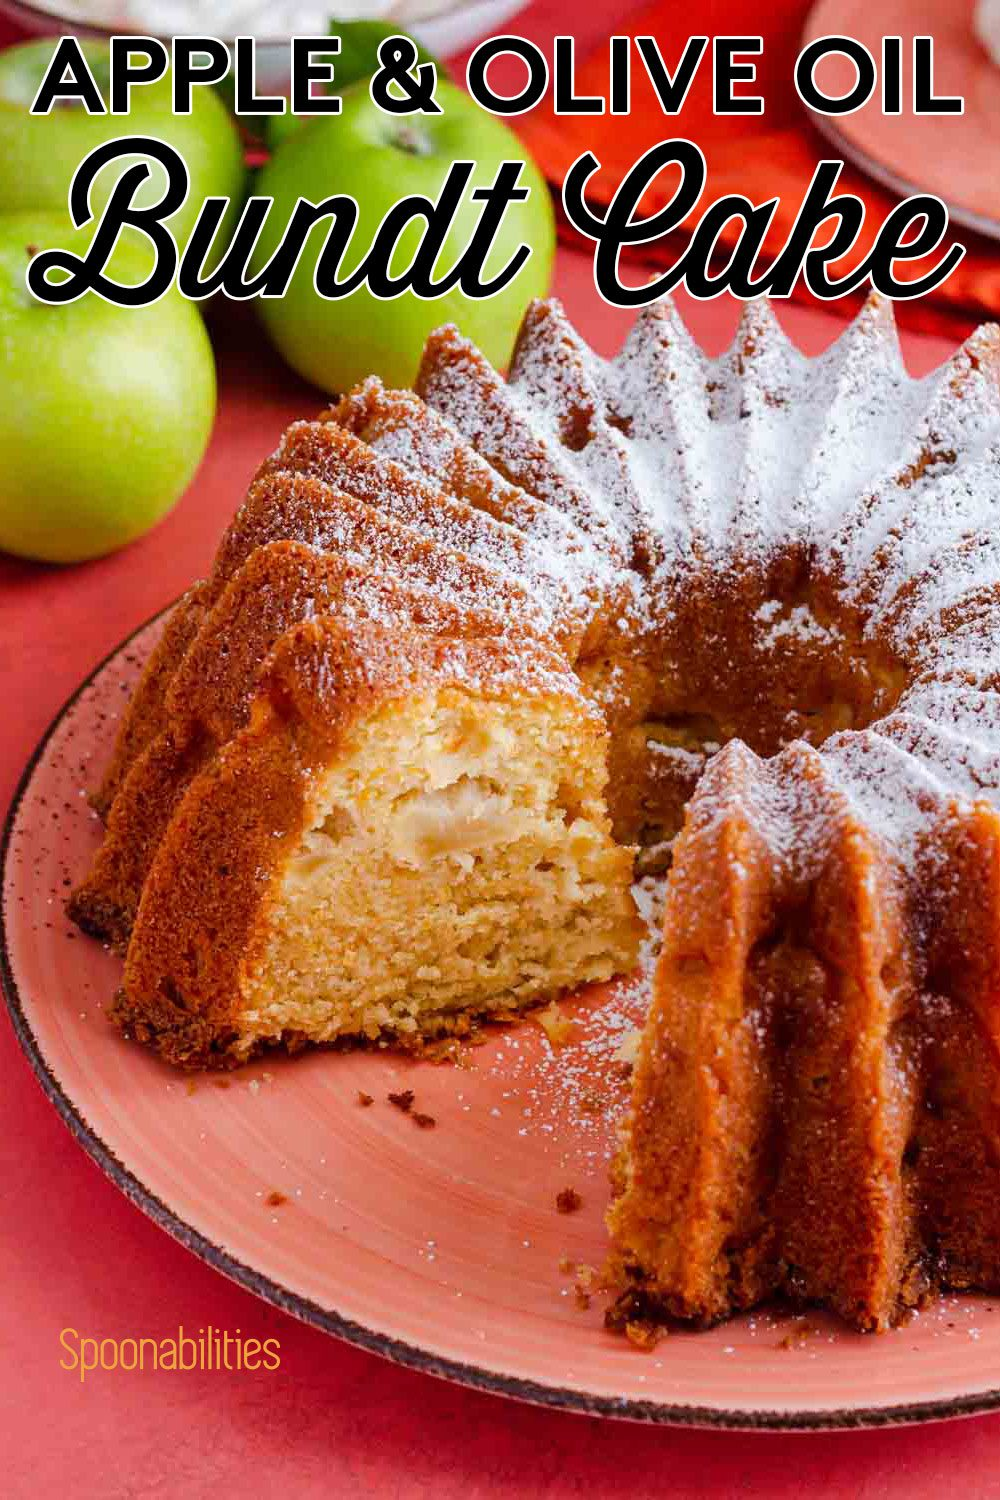 The apple and olive oil bundt cake is on a large plate, one piece of the cake is out, and it's showing the inside of the cake. The cake is dusted in powdered sugar. Recipe at Spoonabilities.com